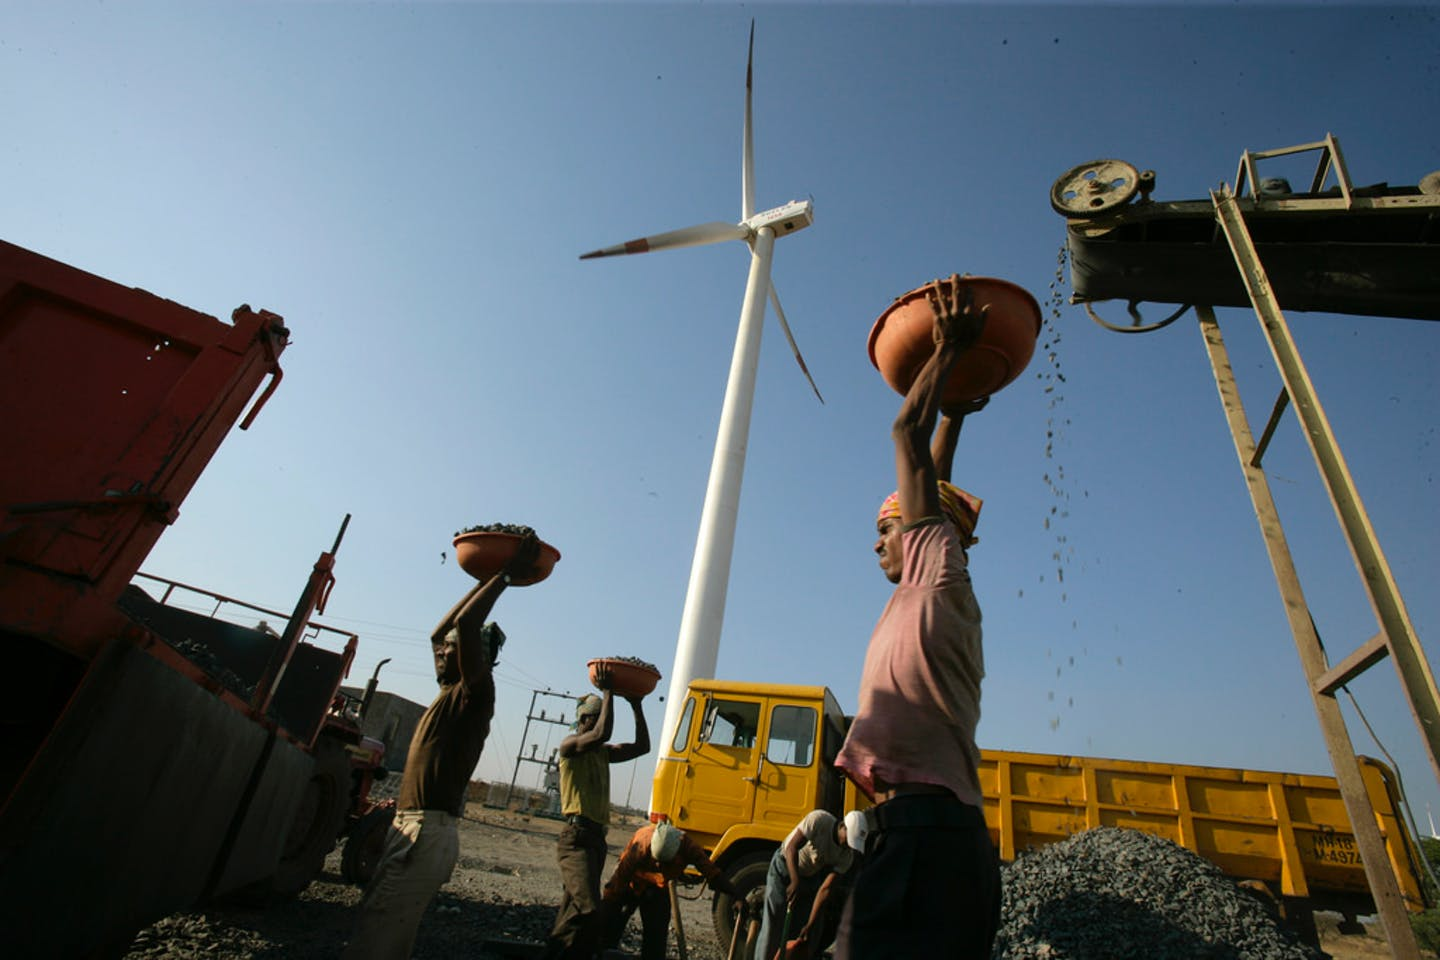 A laborer hauls crushed rocks pulversied by a diesel-powered crusher in the shadow of a wind turbine.